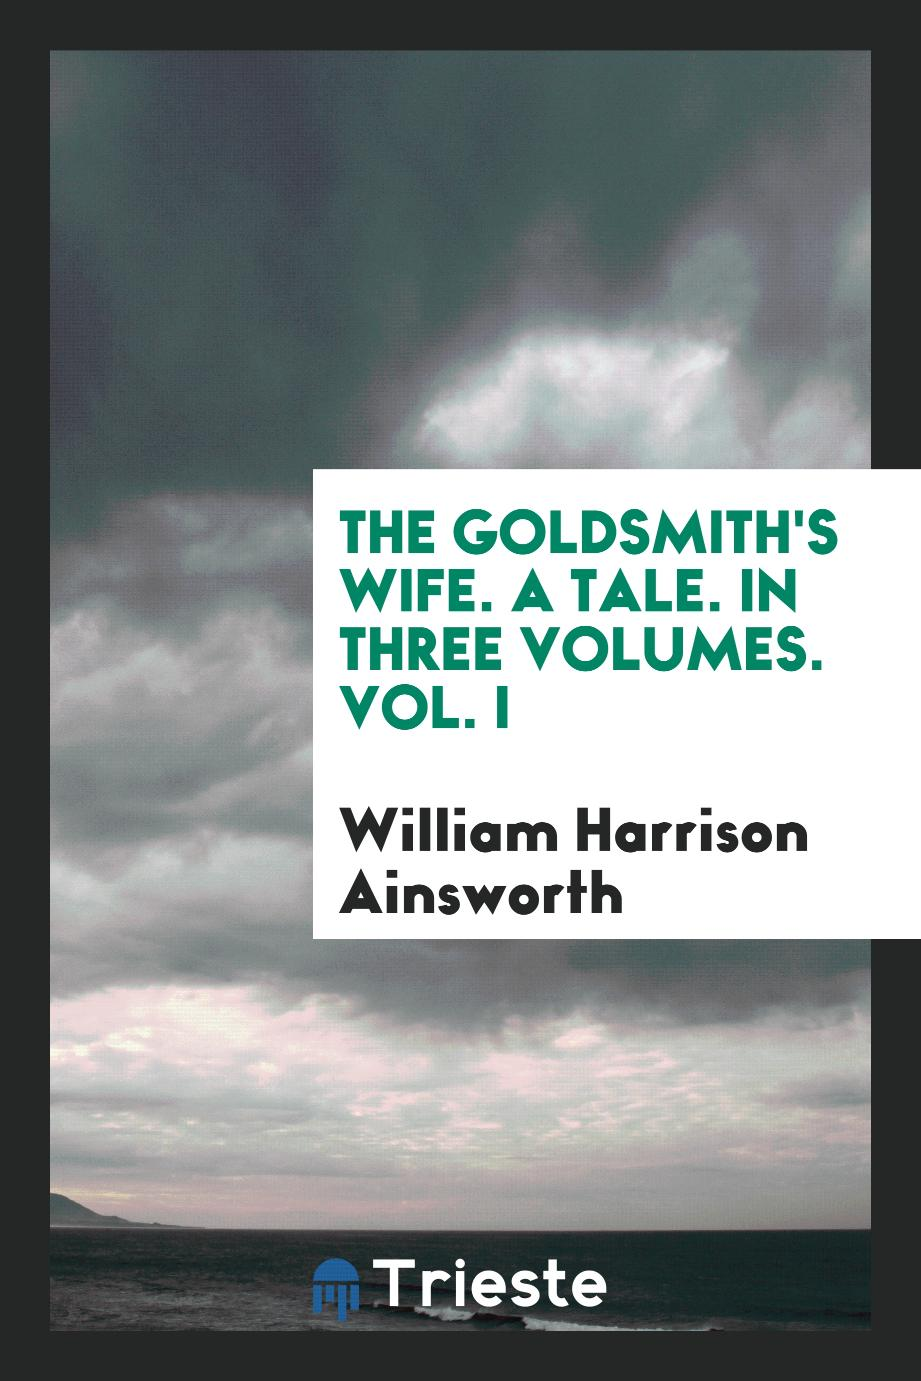 The Goldsmith's Wife. A Tale. In Three Volumes. Vol. I